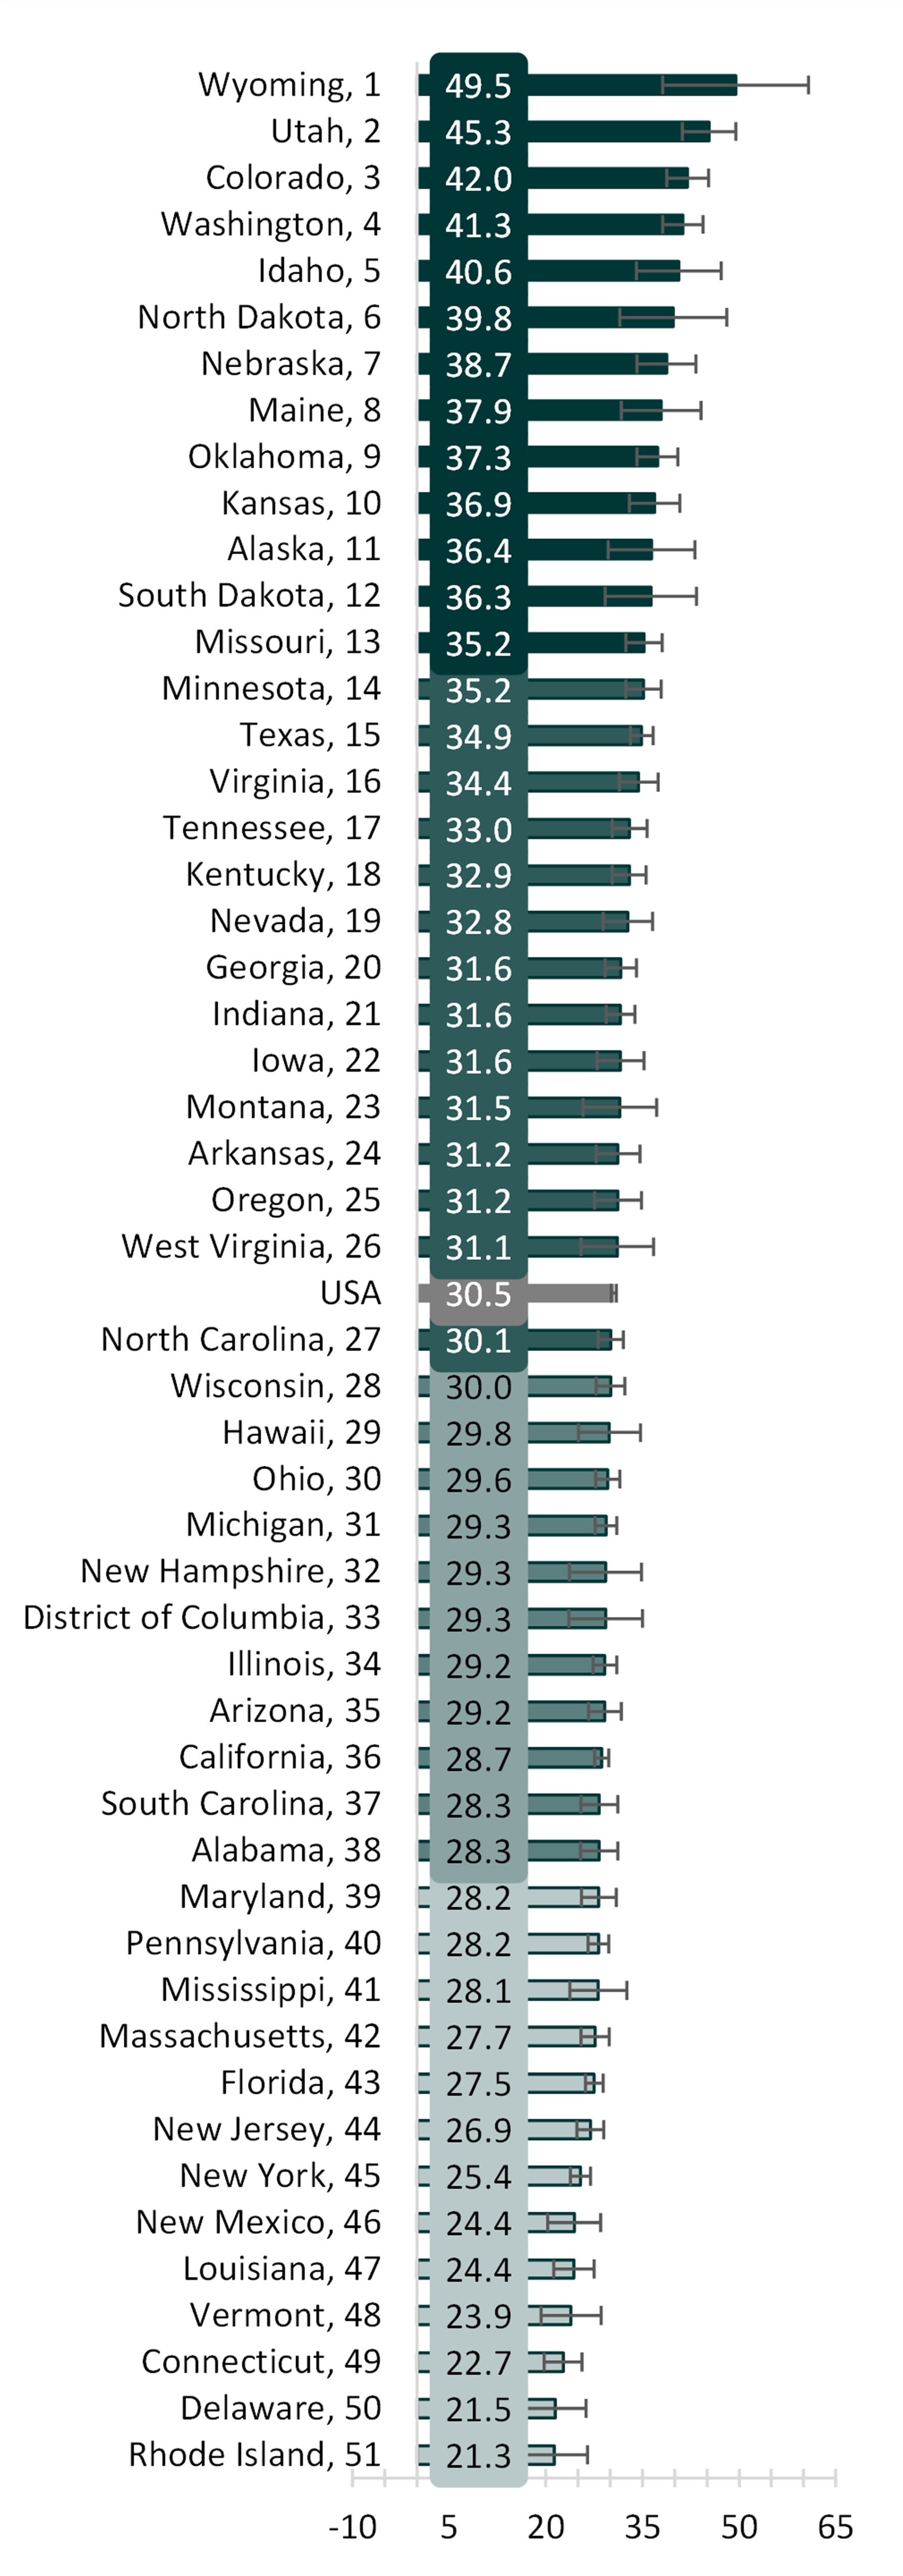 shades of teal table showing state variation in adjusted marriage rate per 1k unmarried women aged 15+